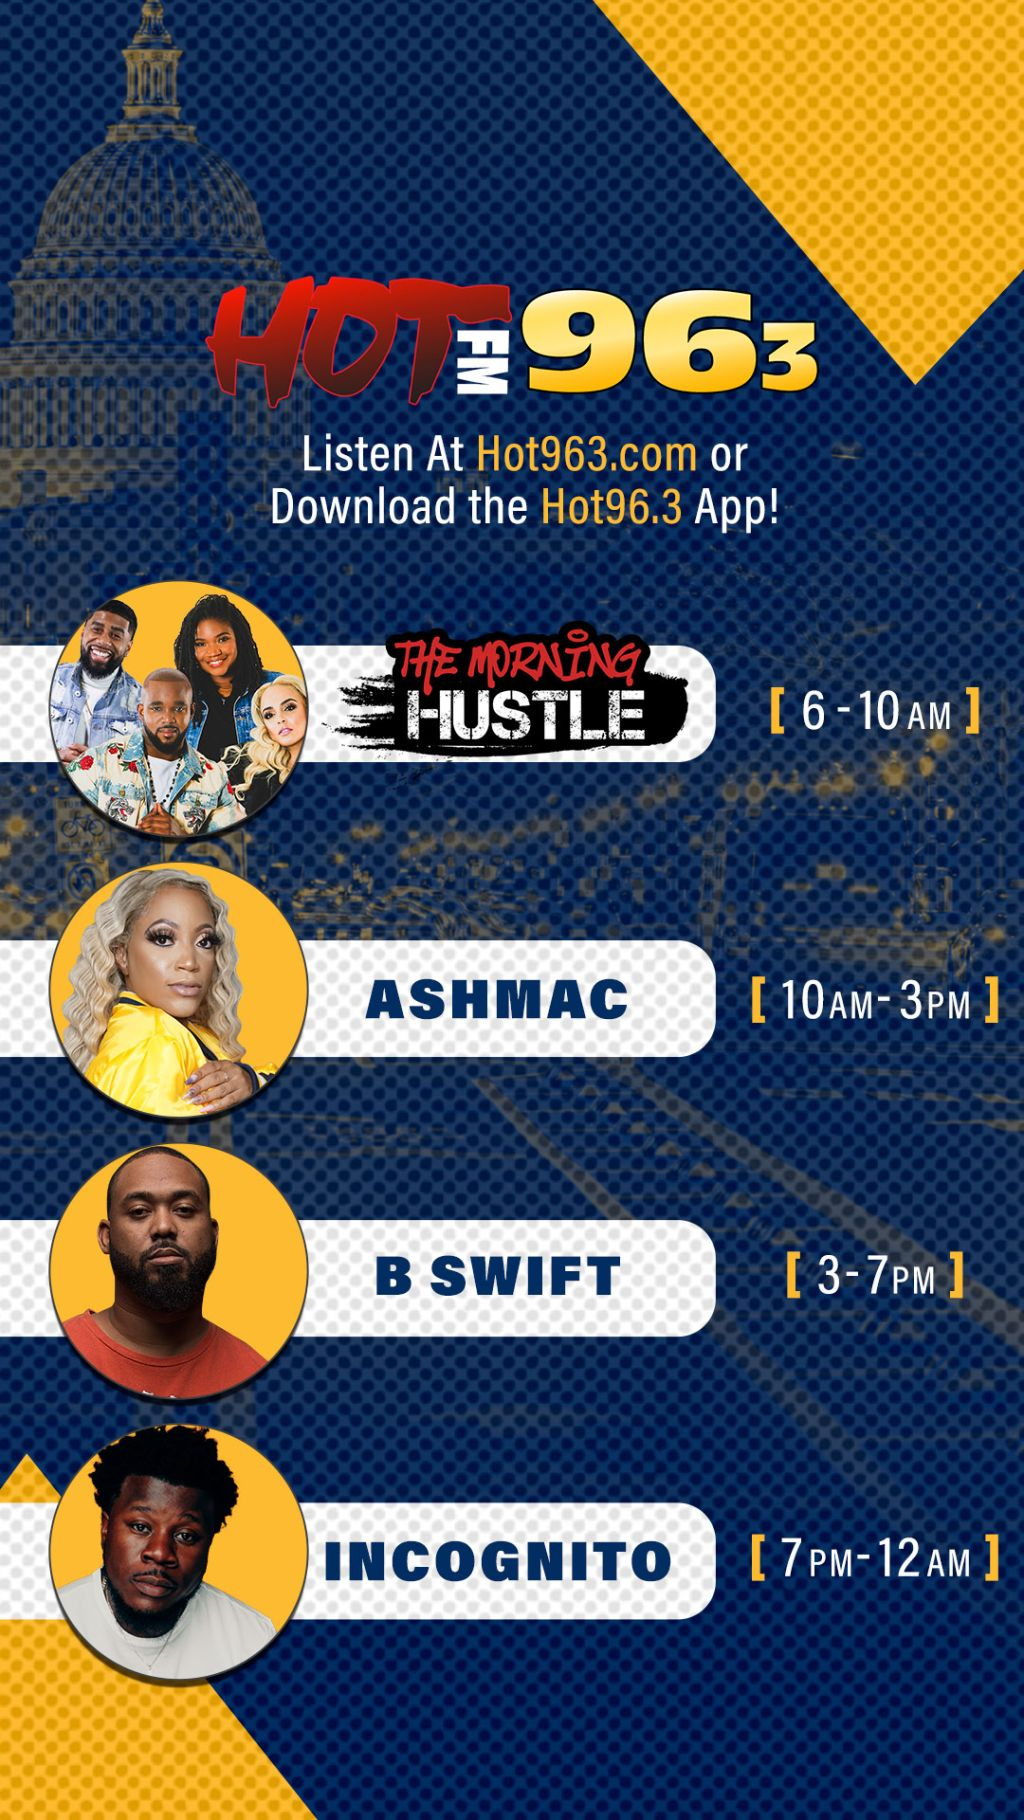 Hot 96.3 Promo Graphics